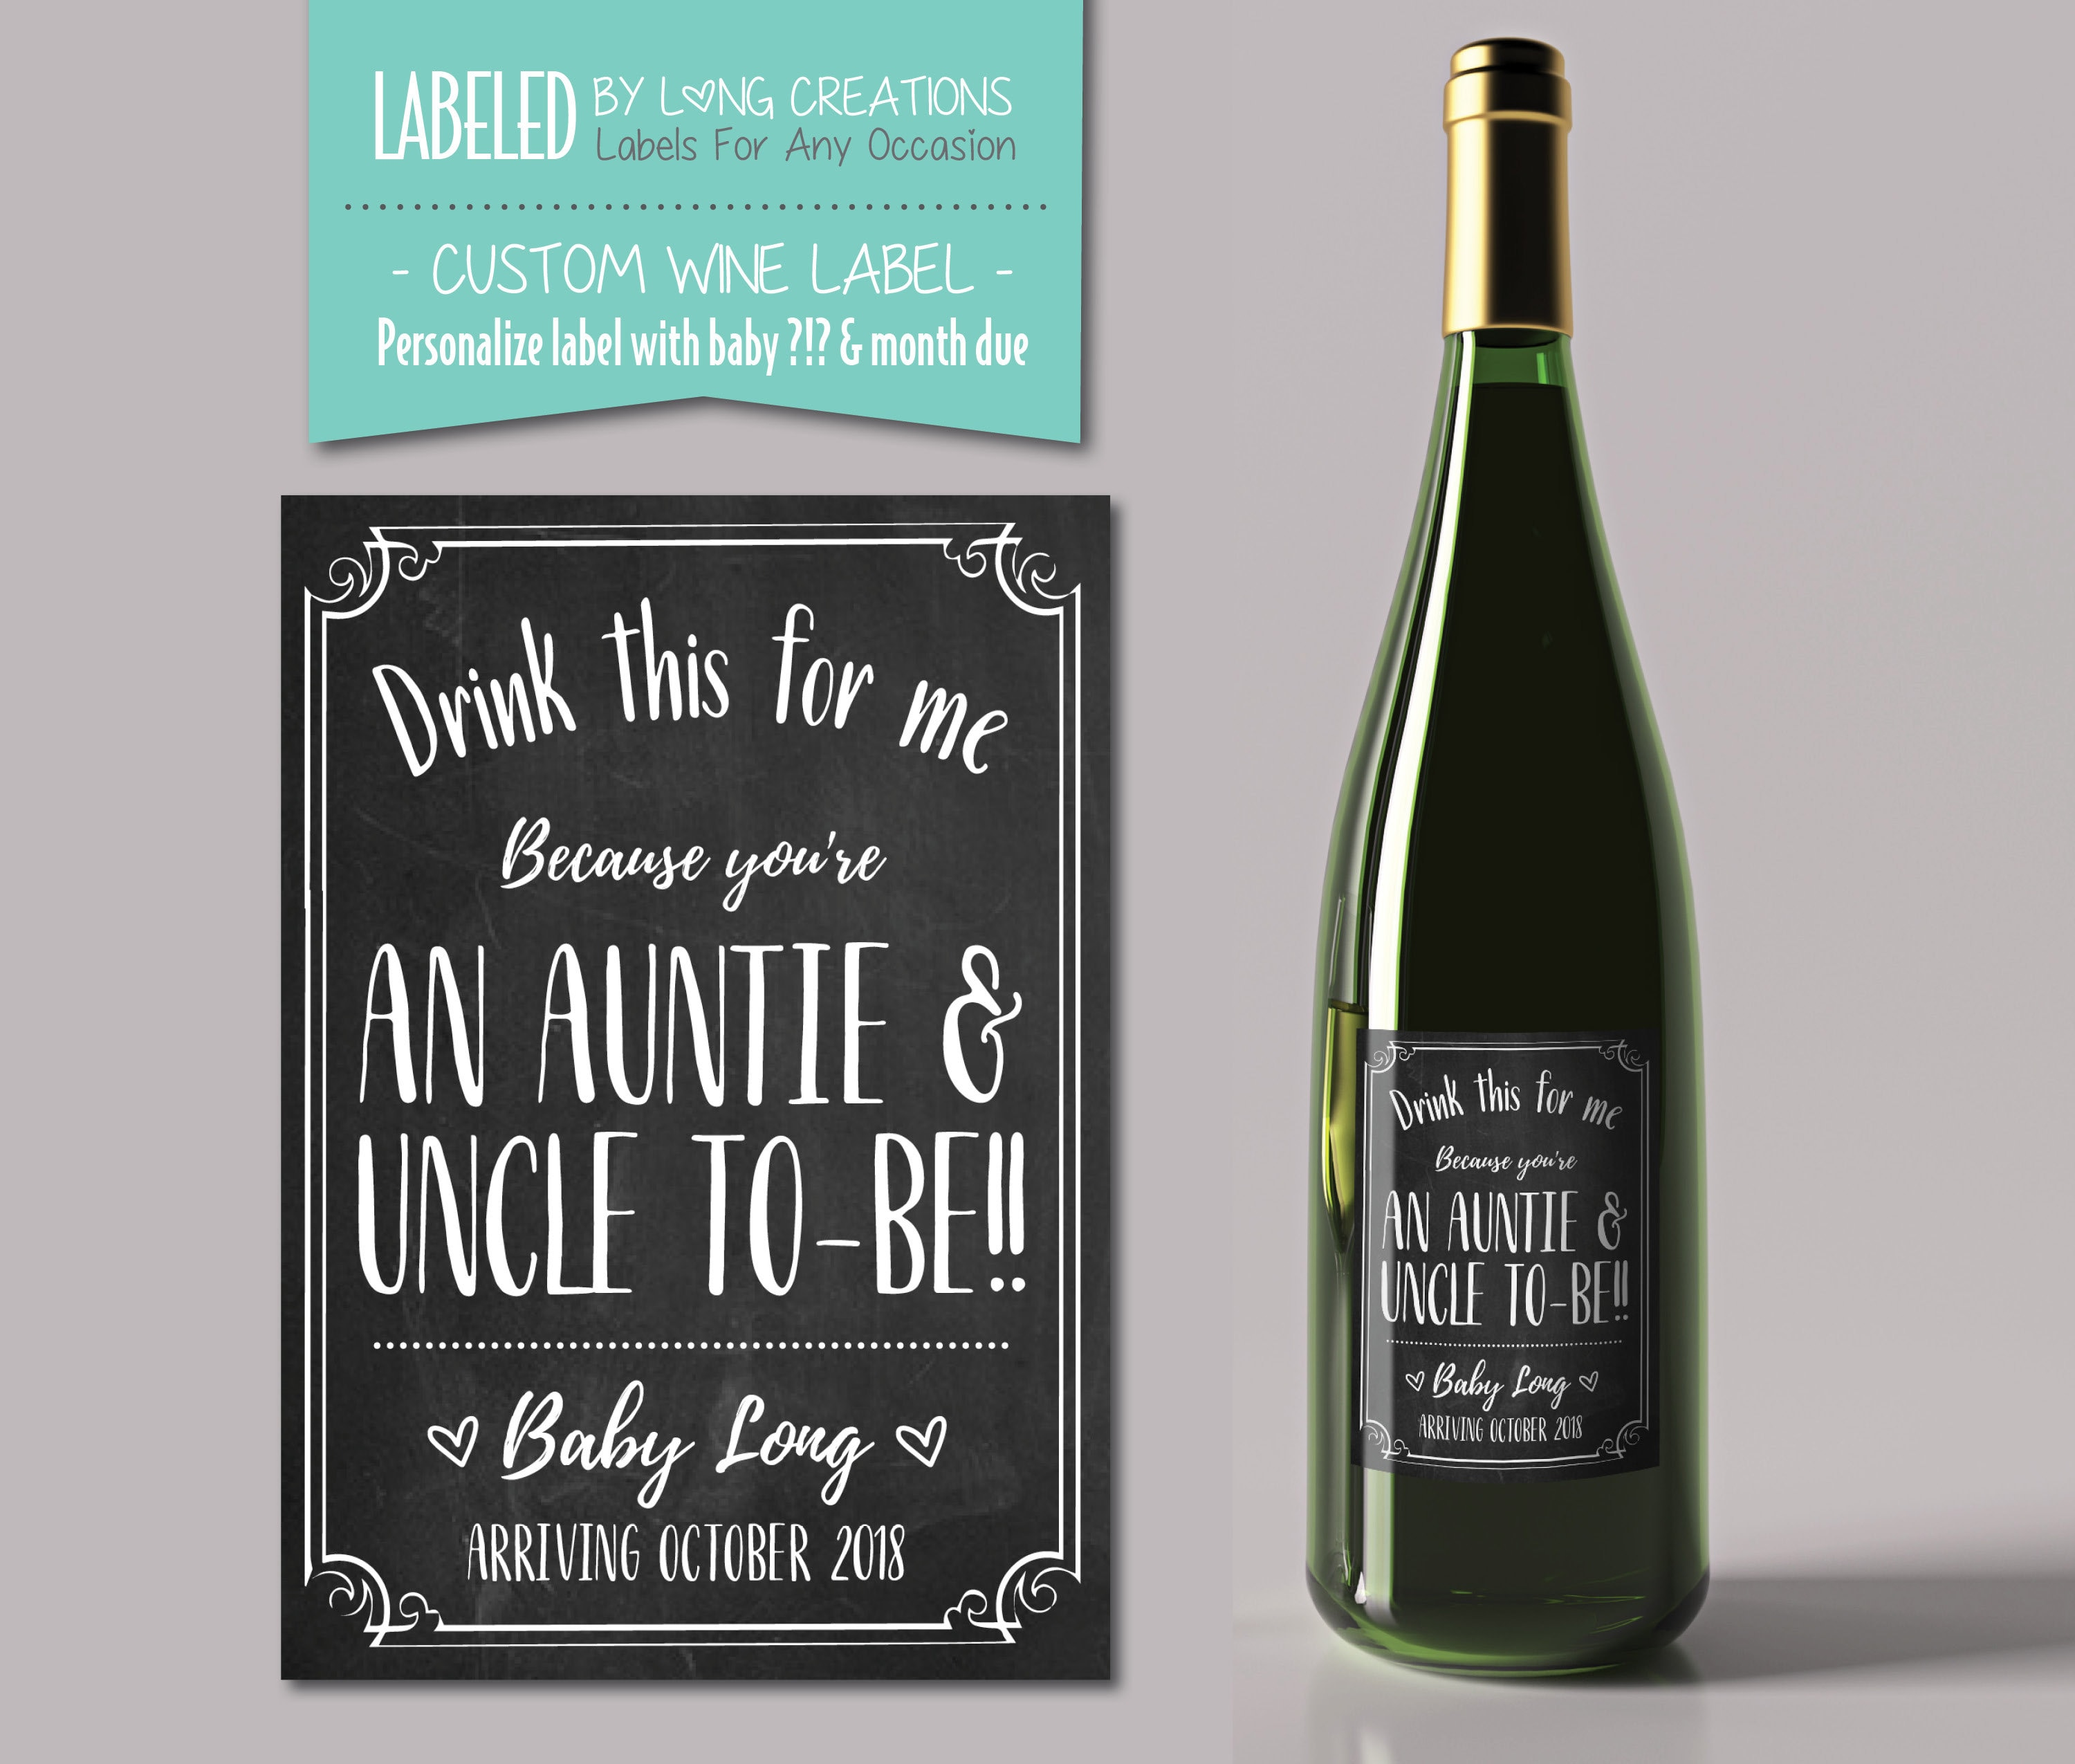 auntie & uncle to be wine label – new auntie / uncle gift – pregnancy announcement – baby announcement – personalized sticker – custom label                                                                    Labeledbylong                               5 out of 5 stars                                                                                                                                                                                                                                                          (926)                                                      CA$6.00                                                                   FREE delivery